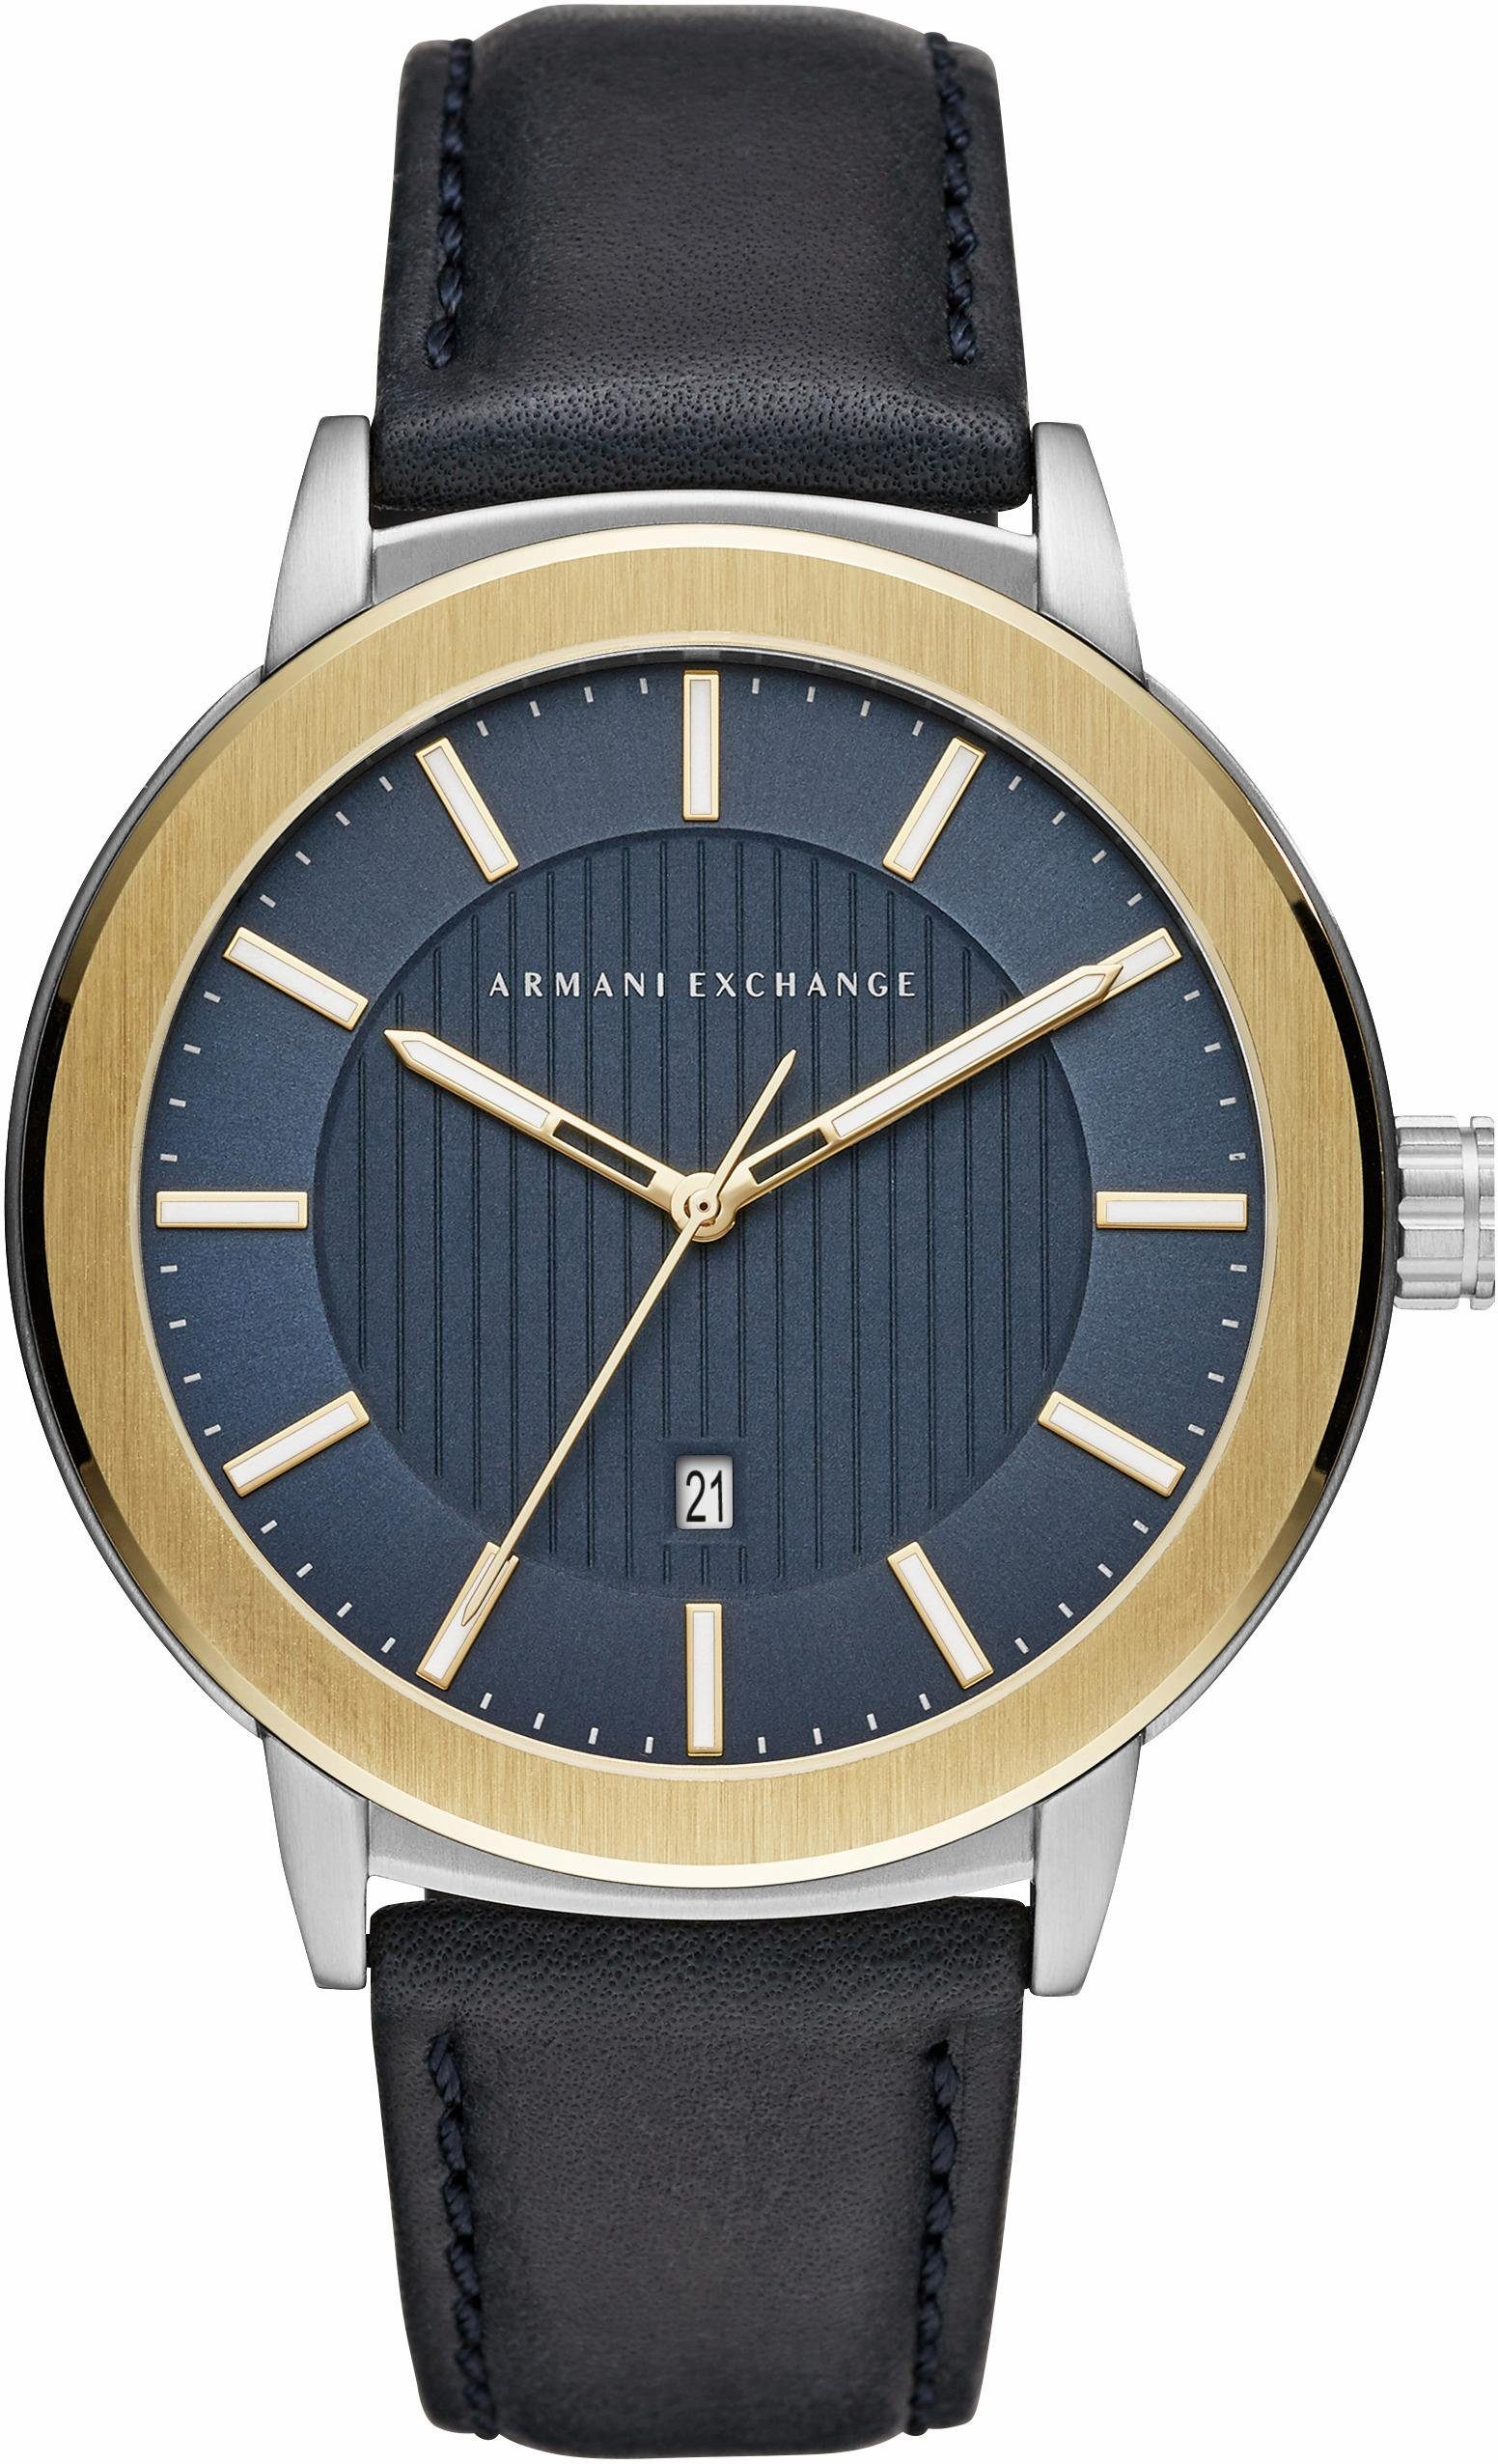 ARMANI EXCHANGE Quarzuhr »AX1463«